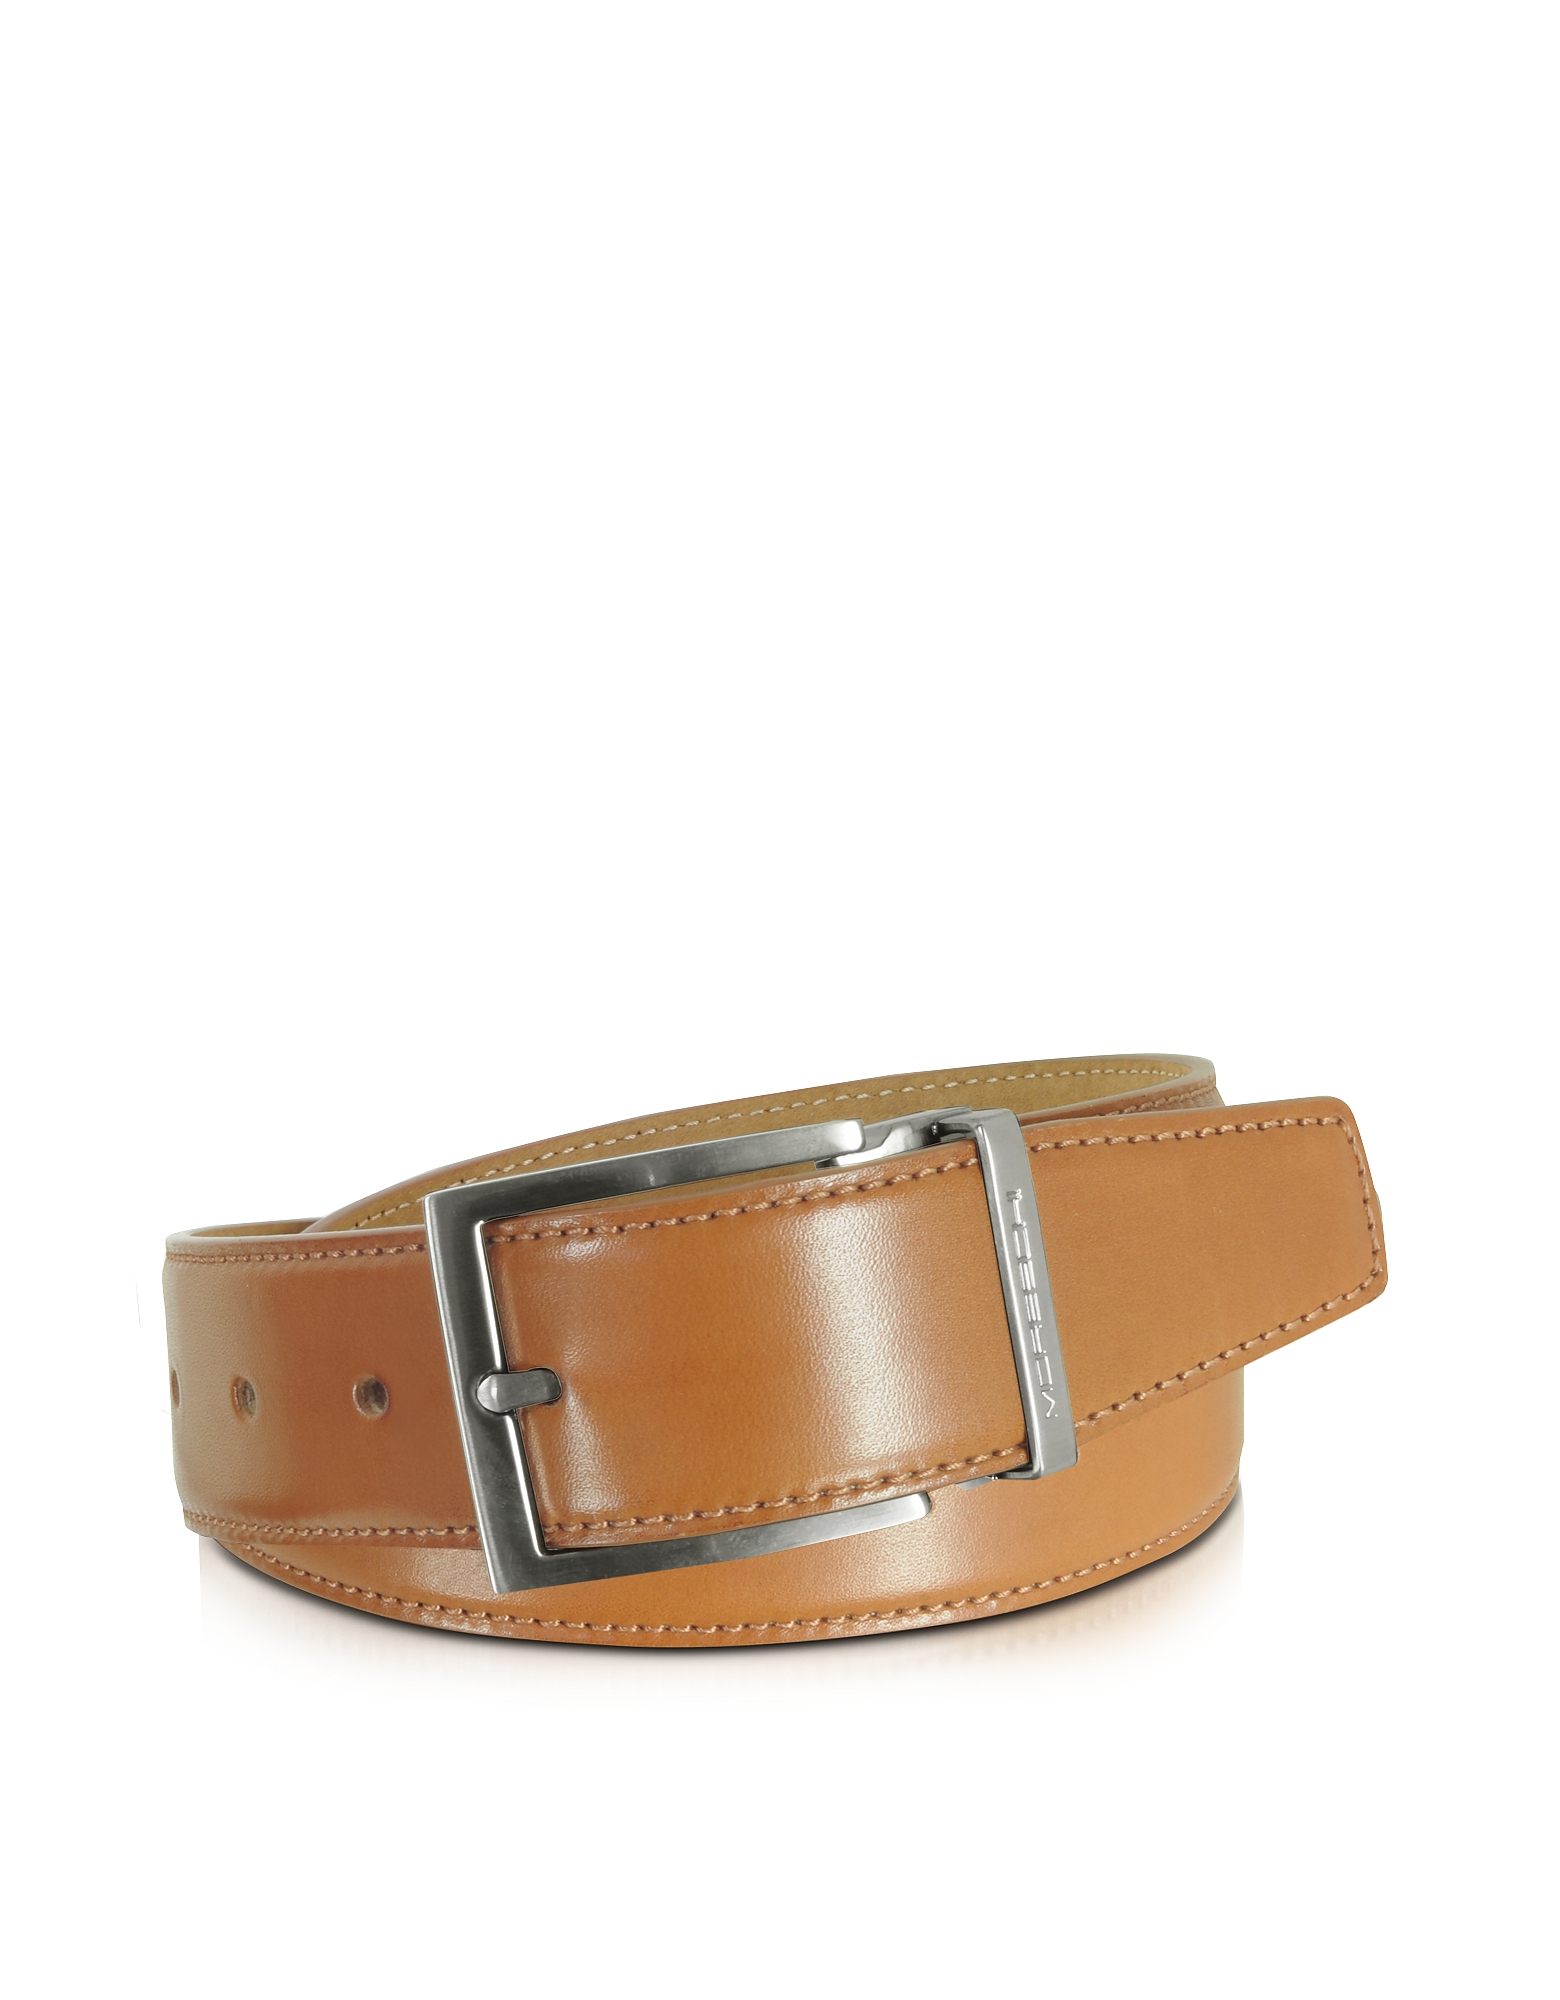 Moreschi Men's Belts, Eton Tan Leather Belt